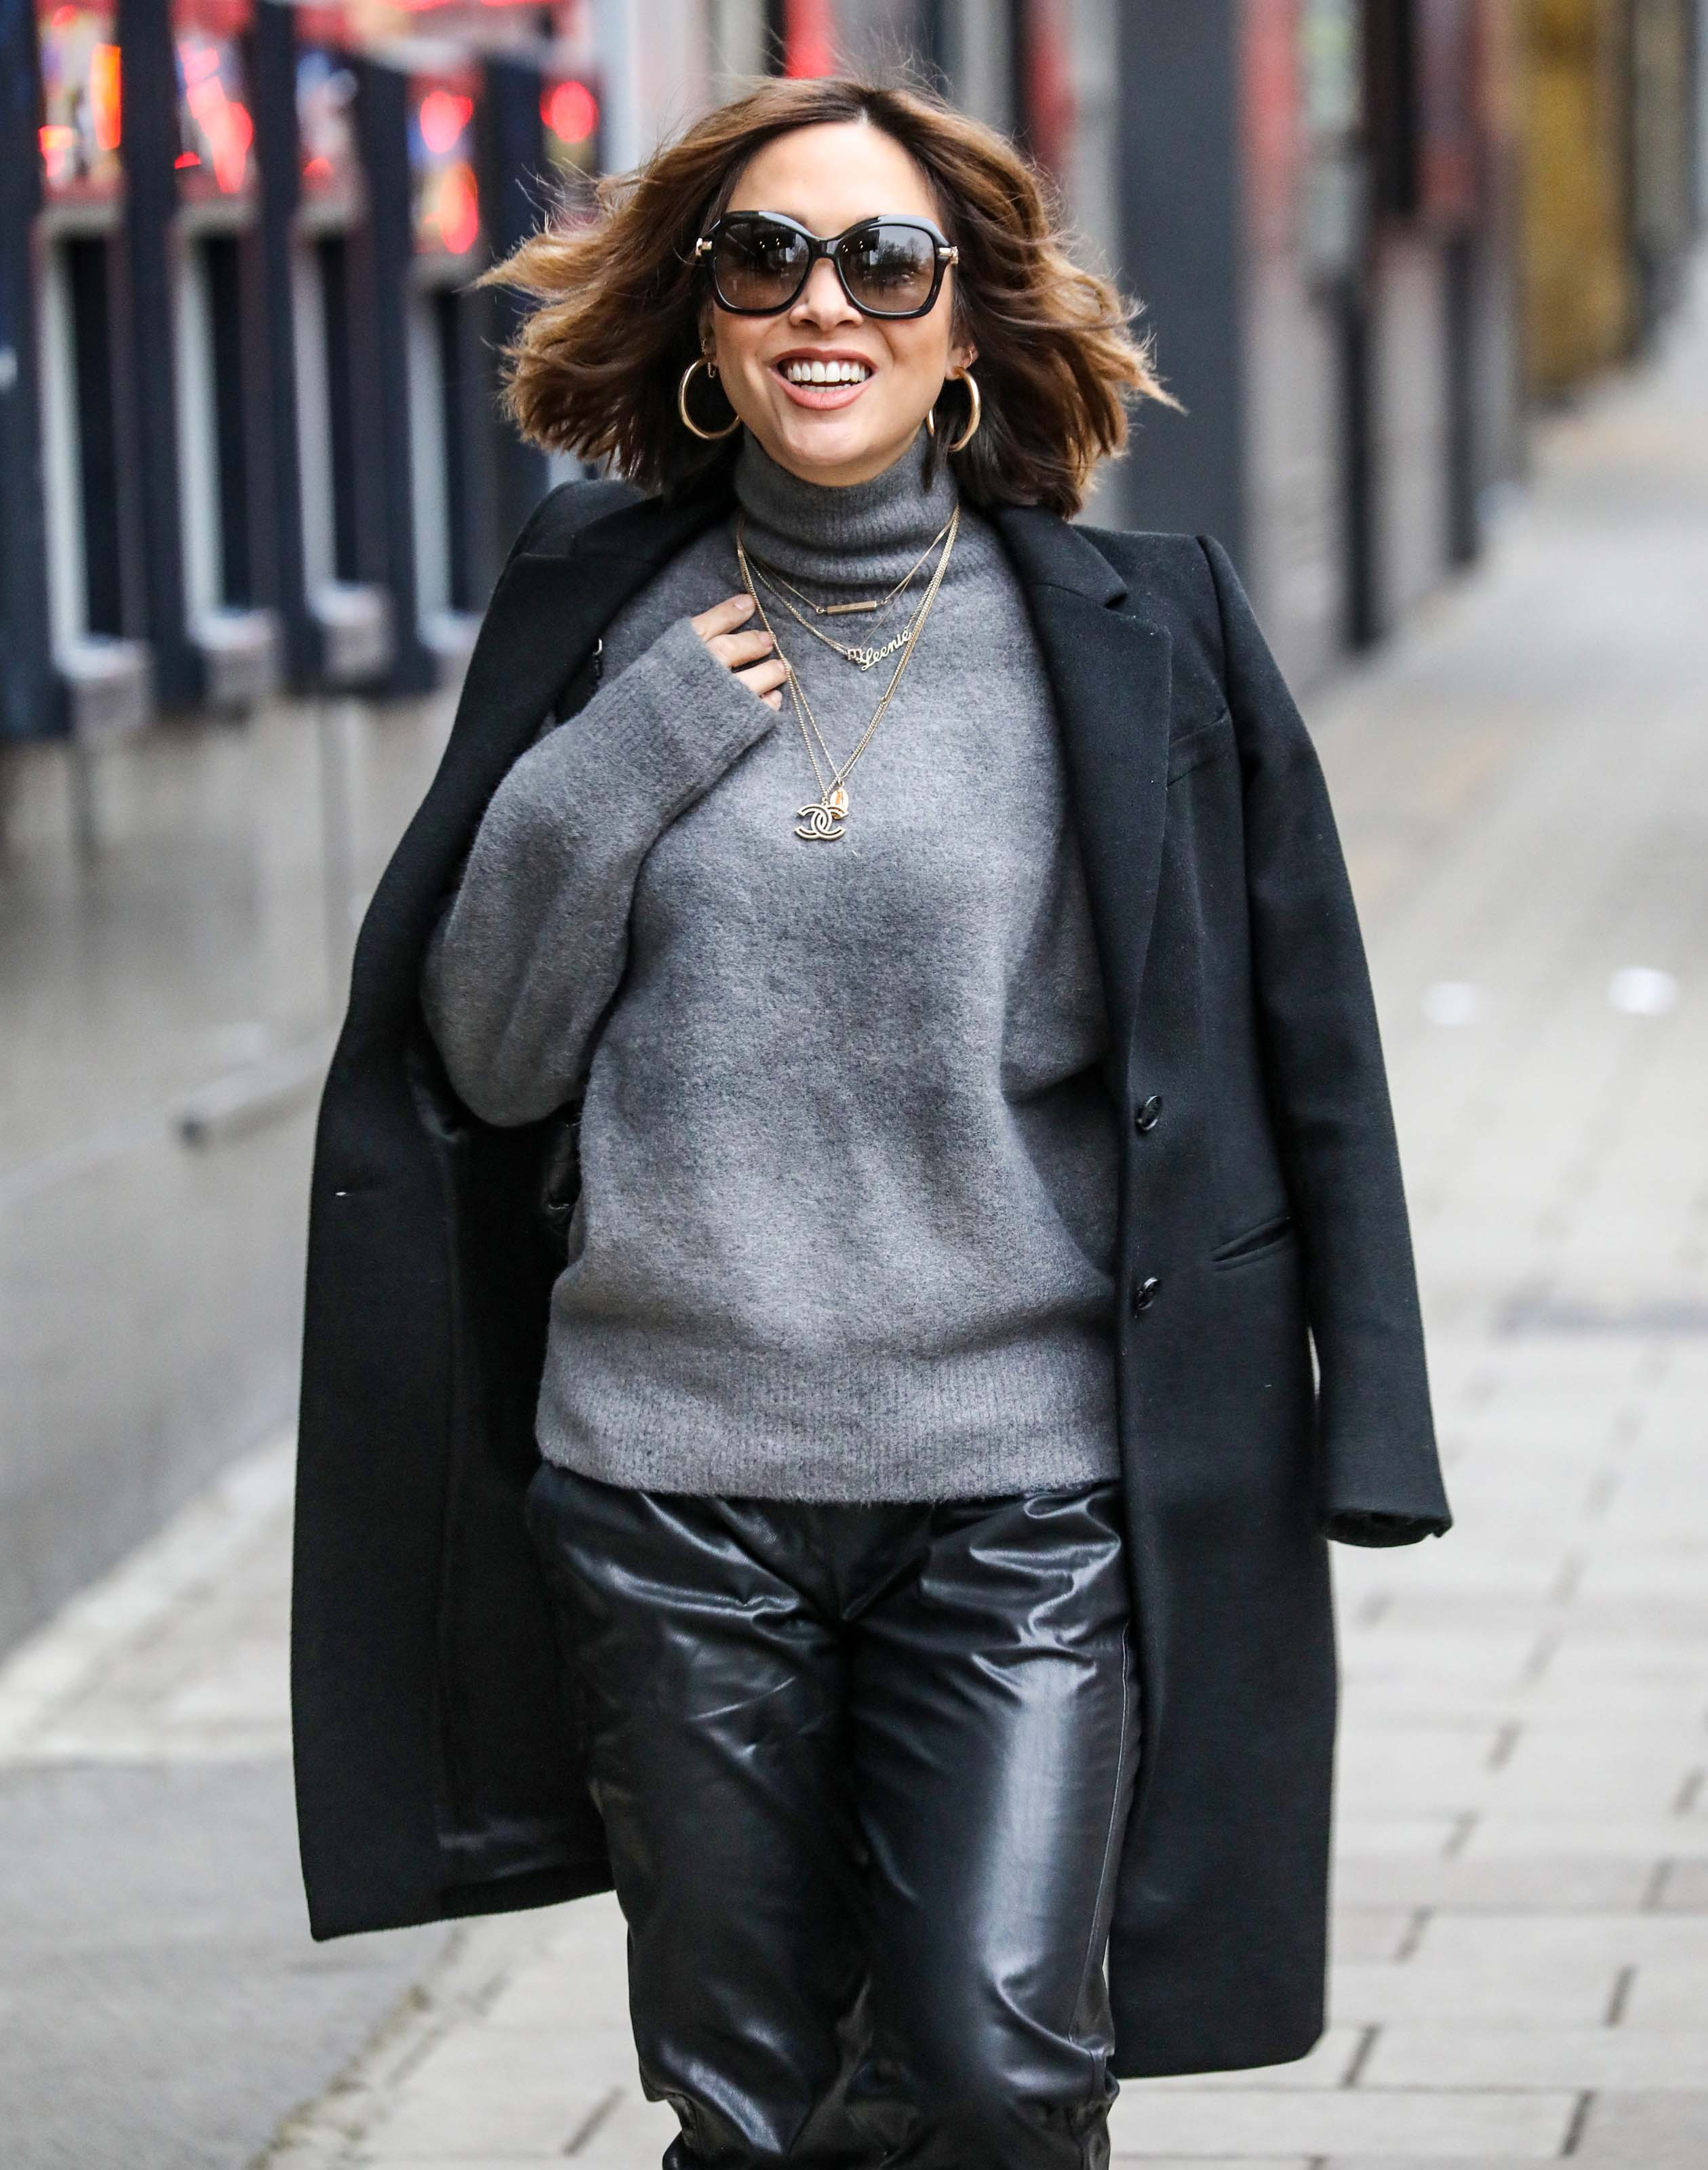 Myleene Klass seen at Global Radio Studios in London